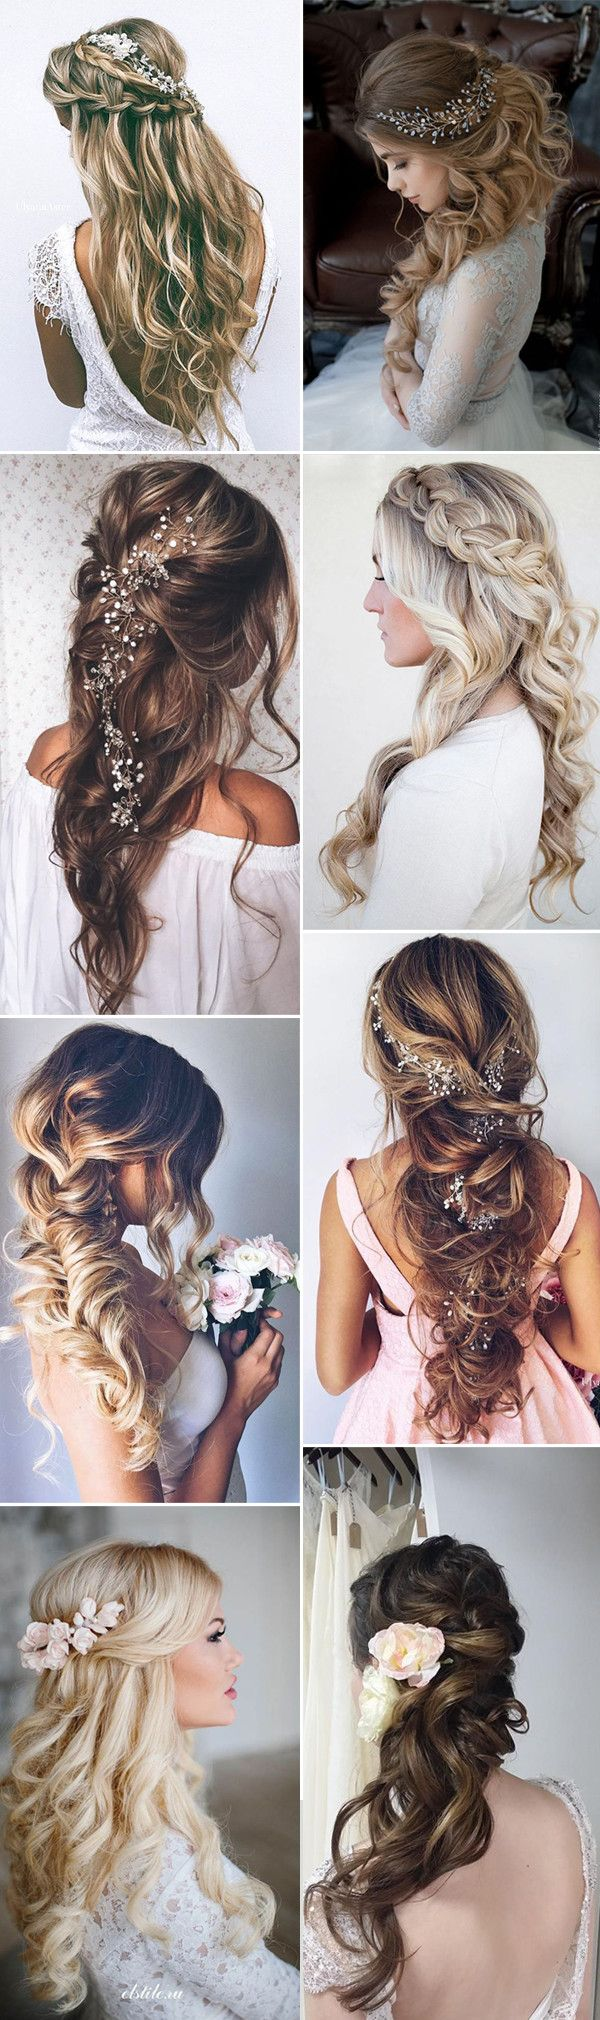 classic half up half down wedding hairstyles